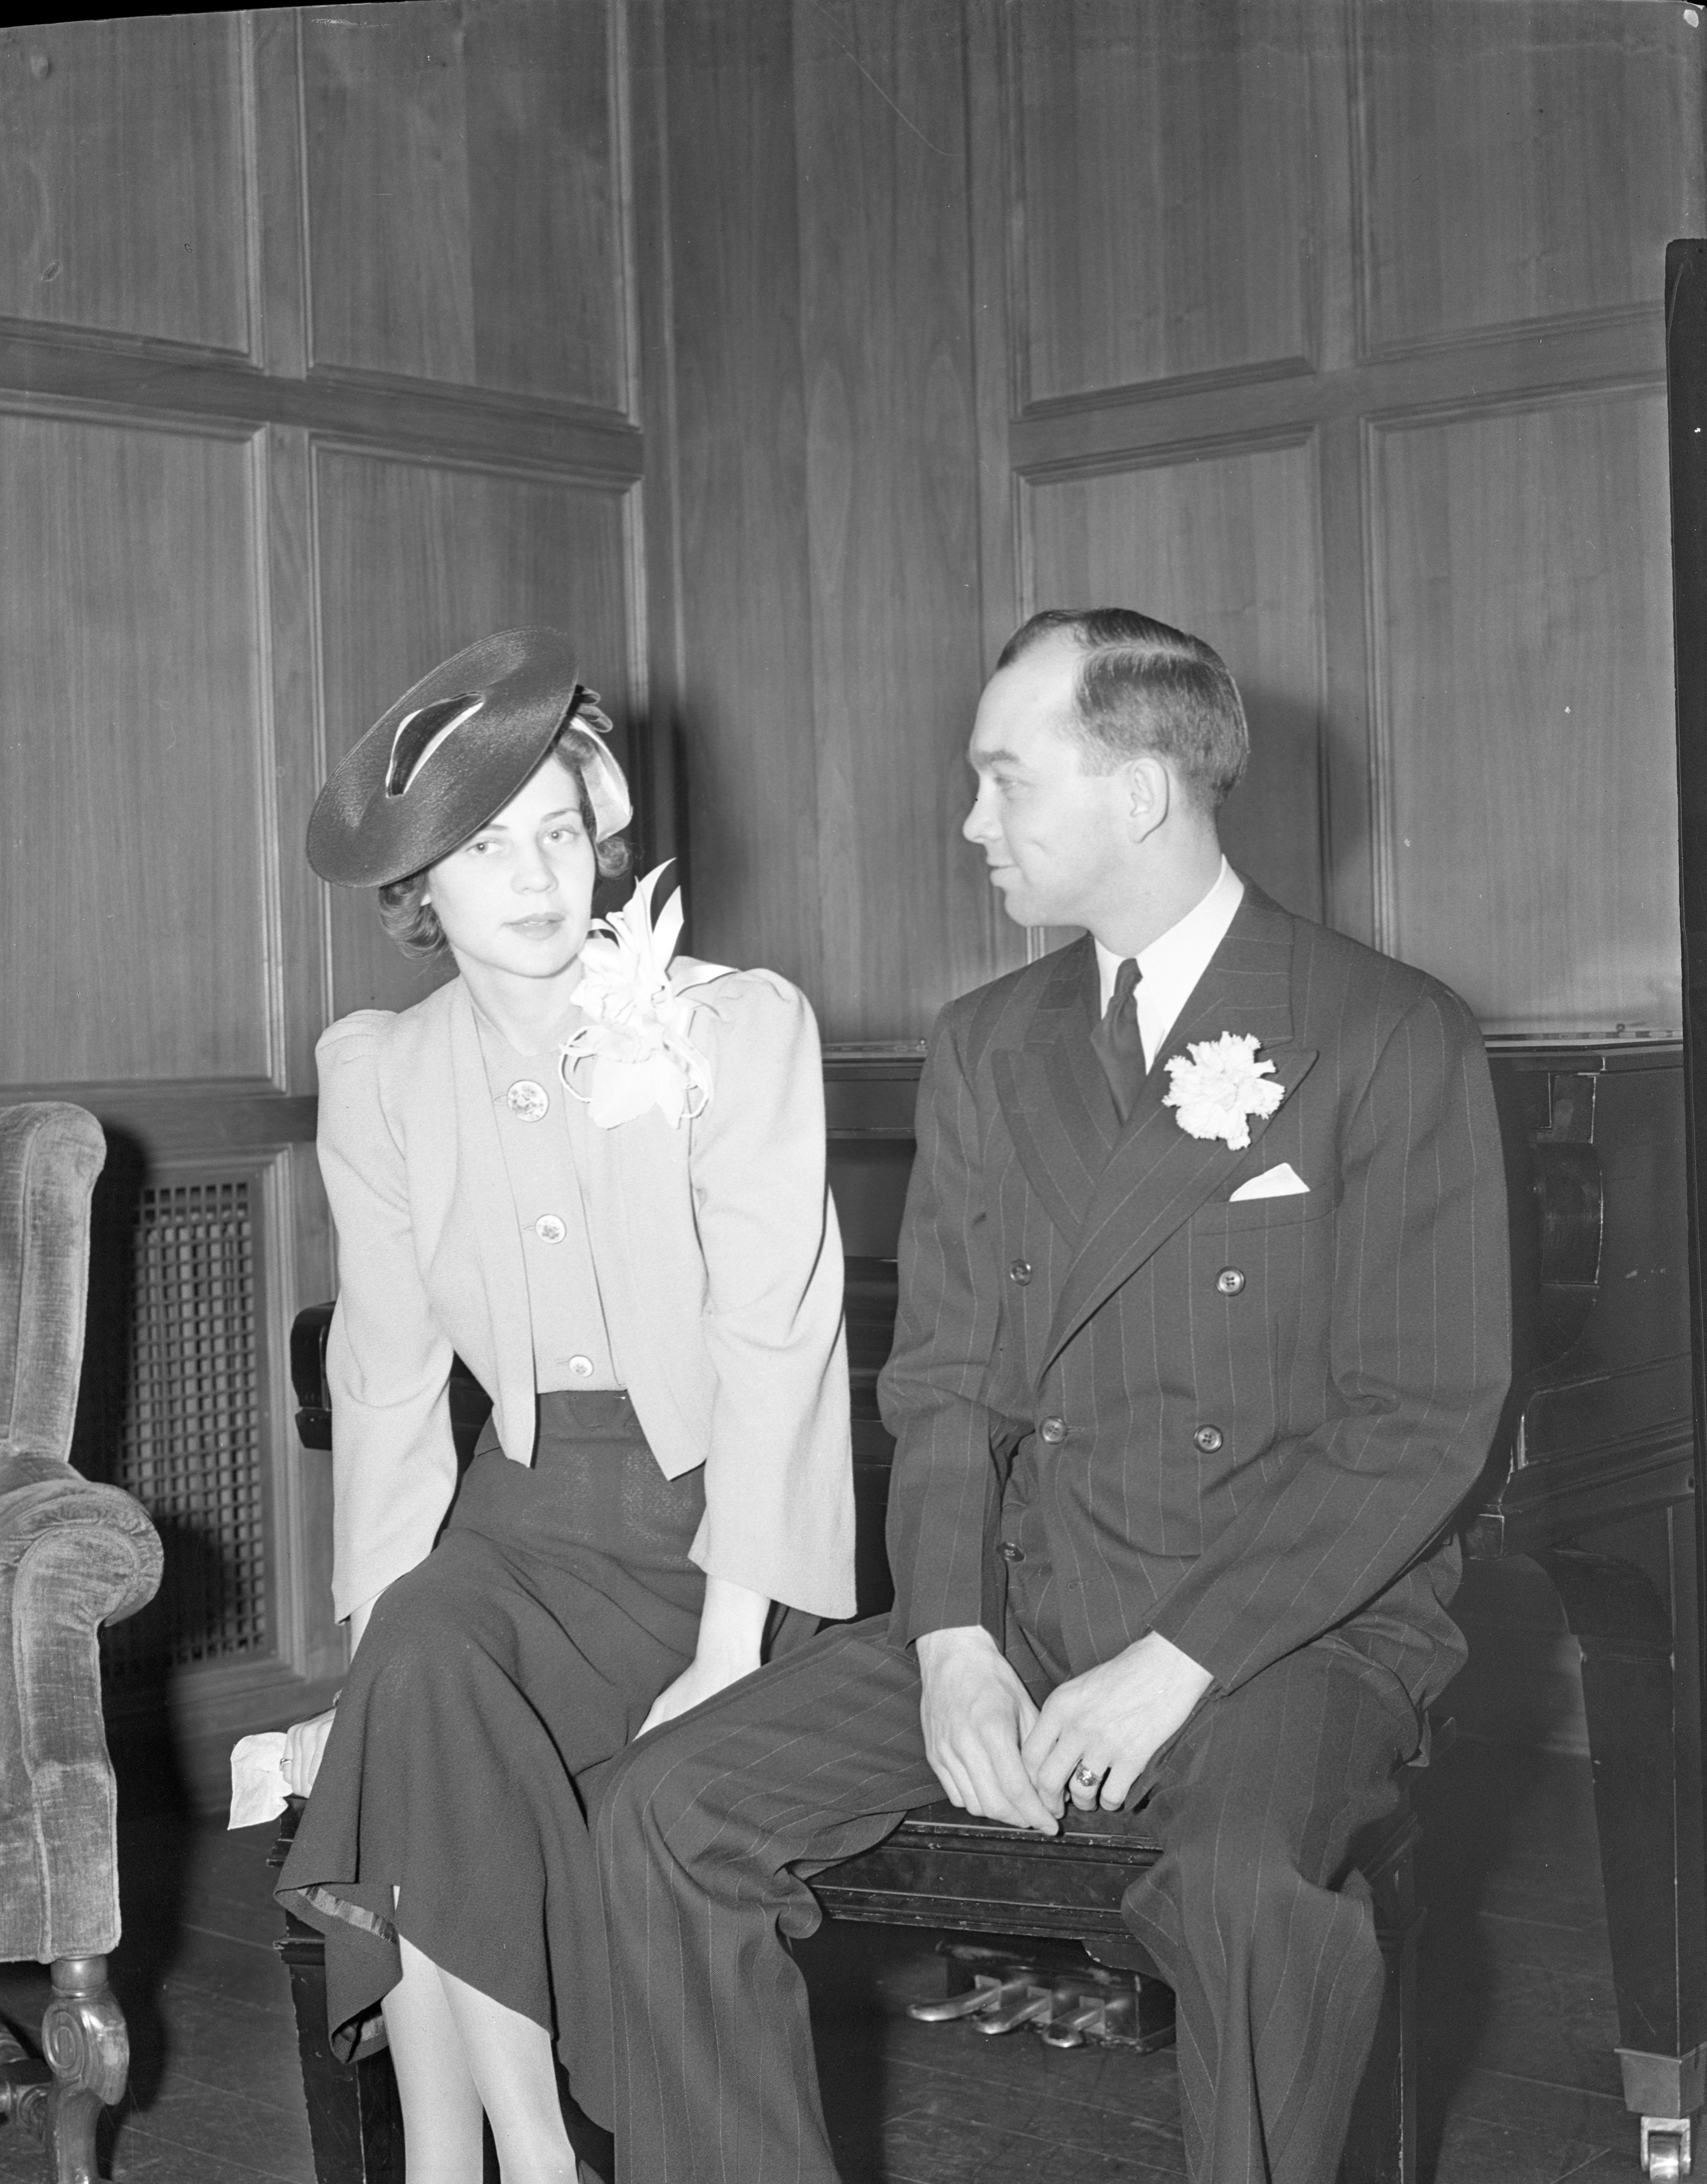 Lawrence & Magdalene Ouimet At Their Wedding Reception, January 1939 image